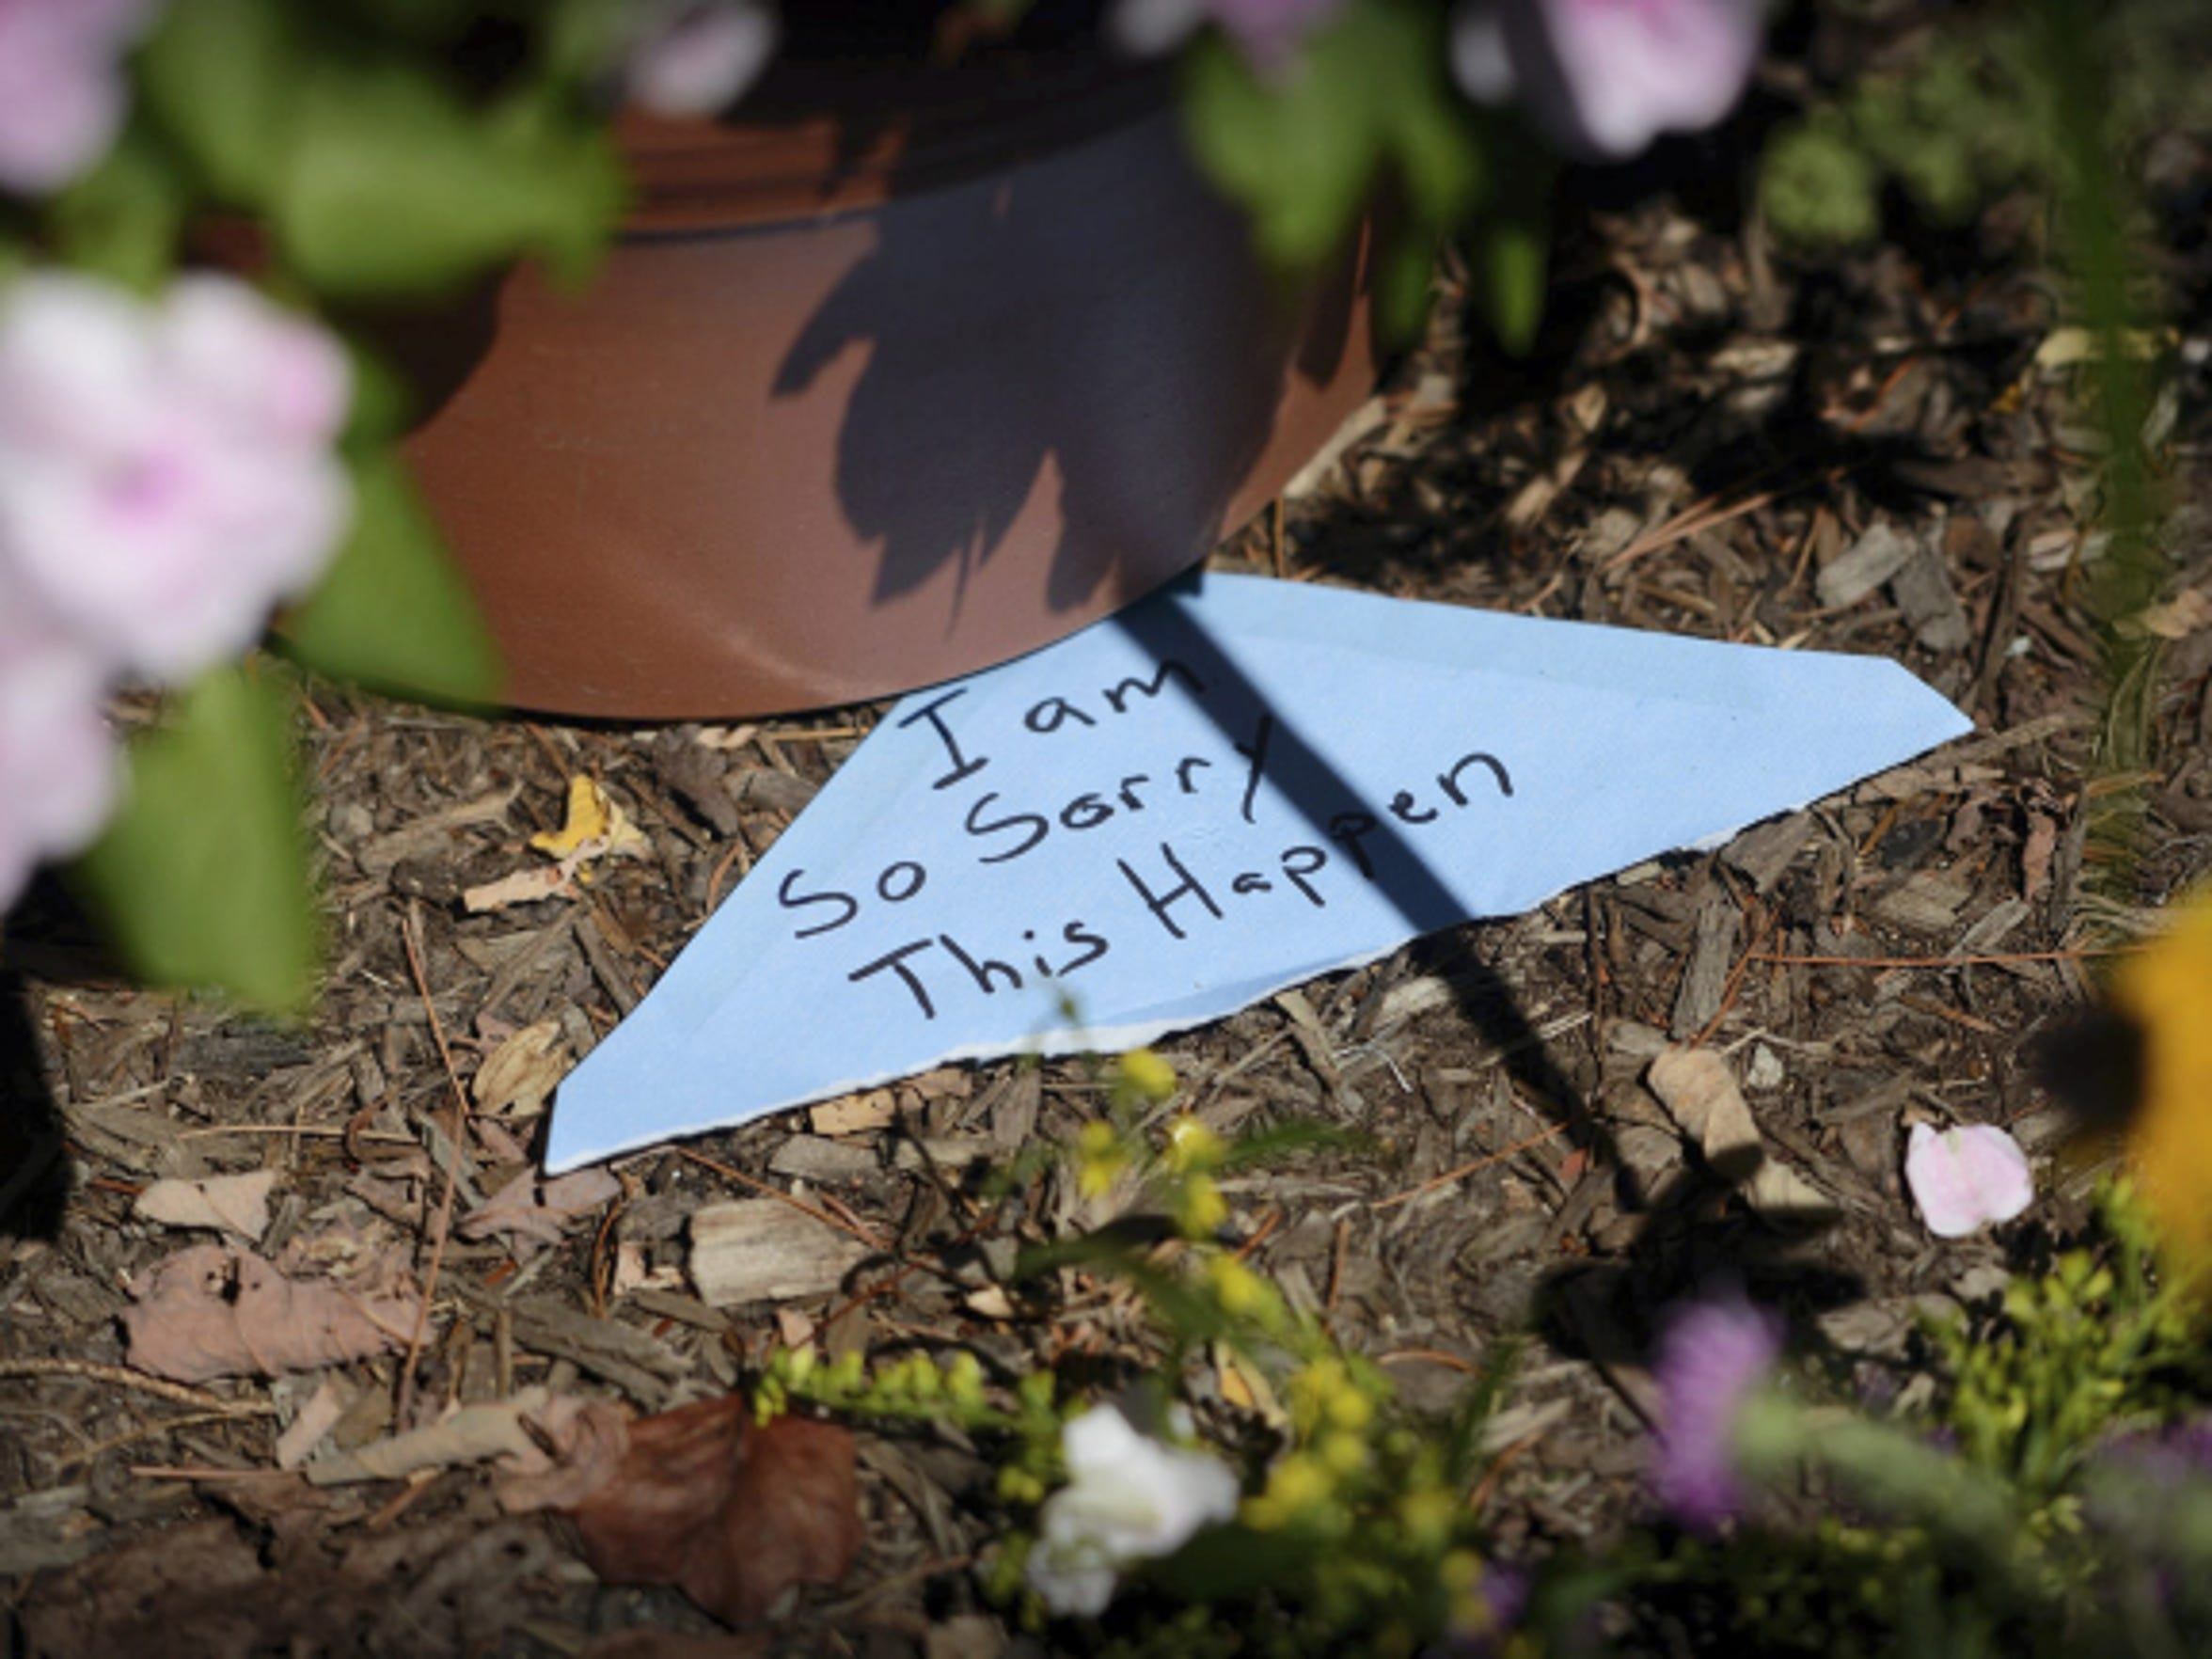 The note expressing sympathy for the shooting death